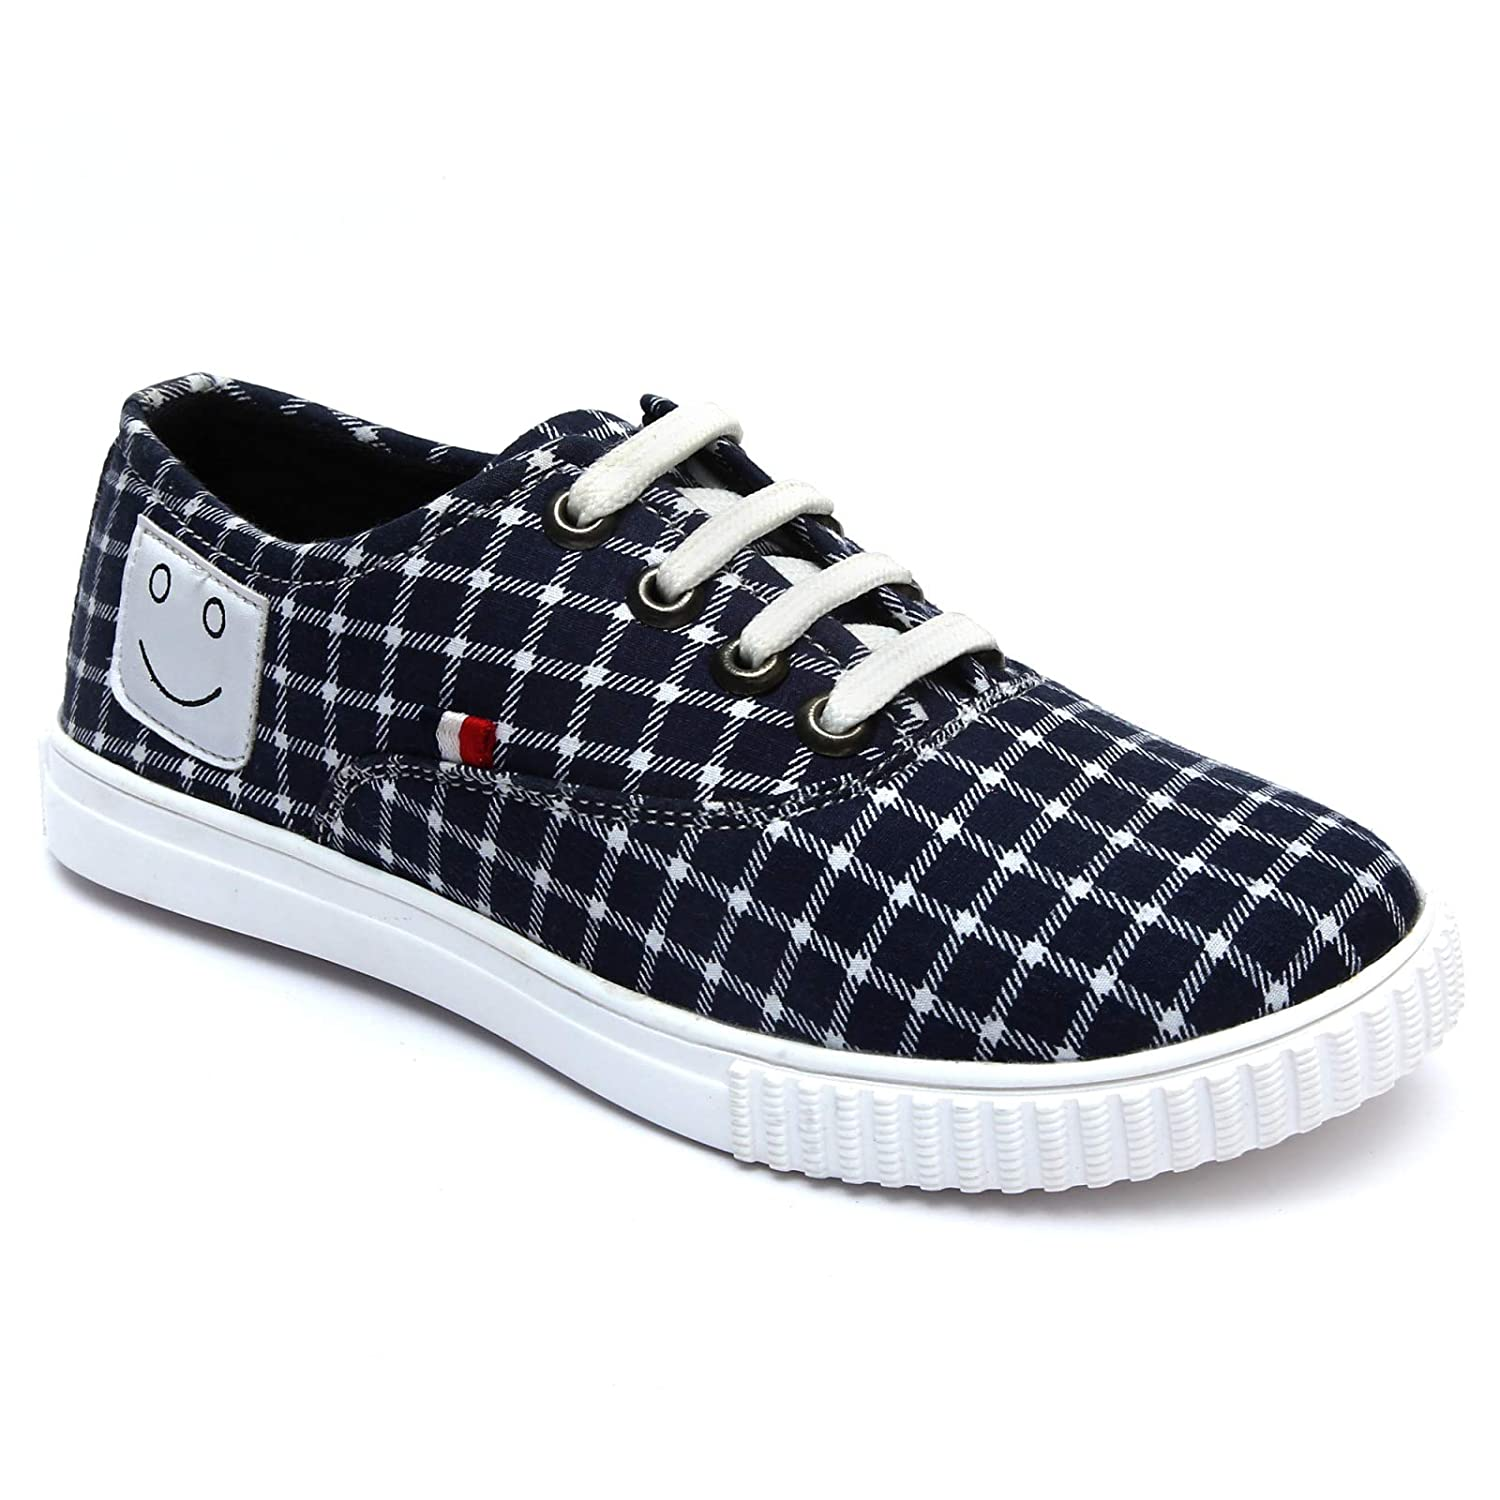 Buy Doodlers Navy Blue Canvas Shoes for